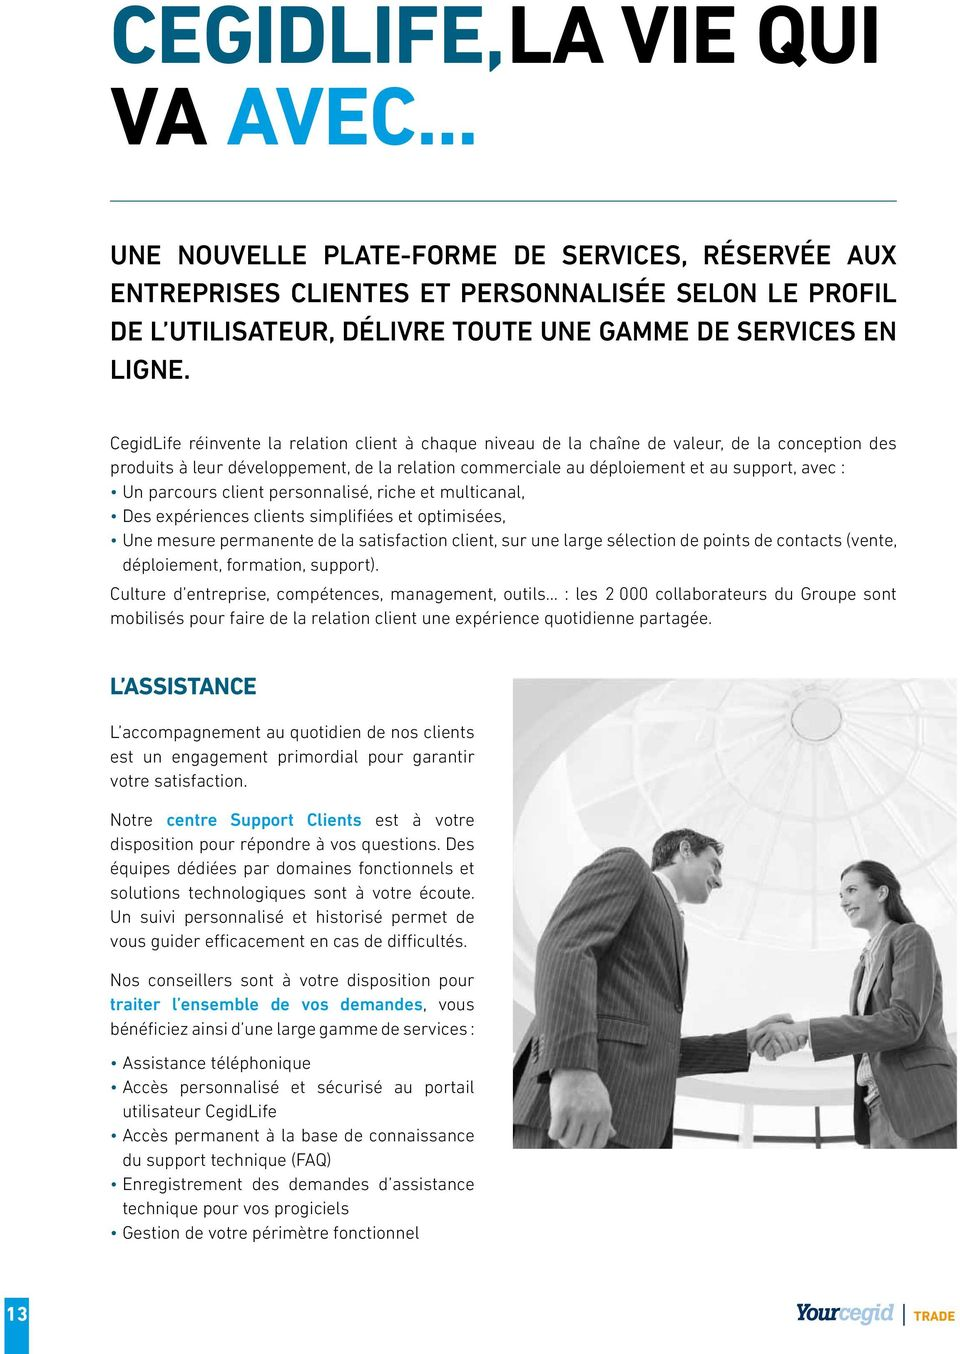 parcours client personnalisé, riche et multicanal, Des expériences clients simplifiées et optimisées, Une mesure permanente de la satisfaction client, sur une large sélection de points de contacts